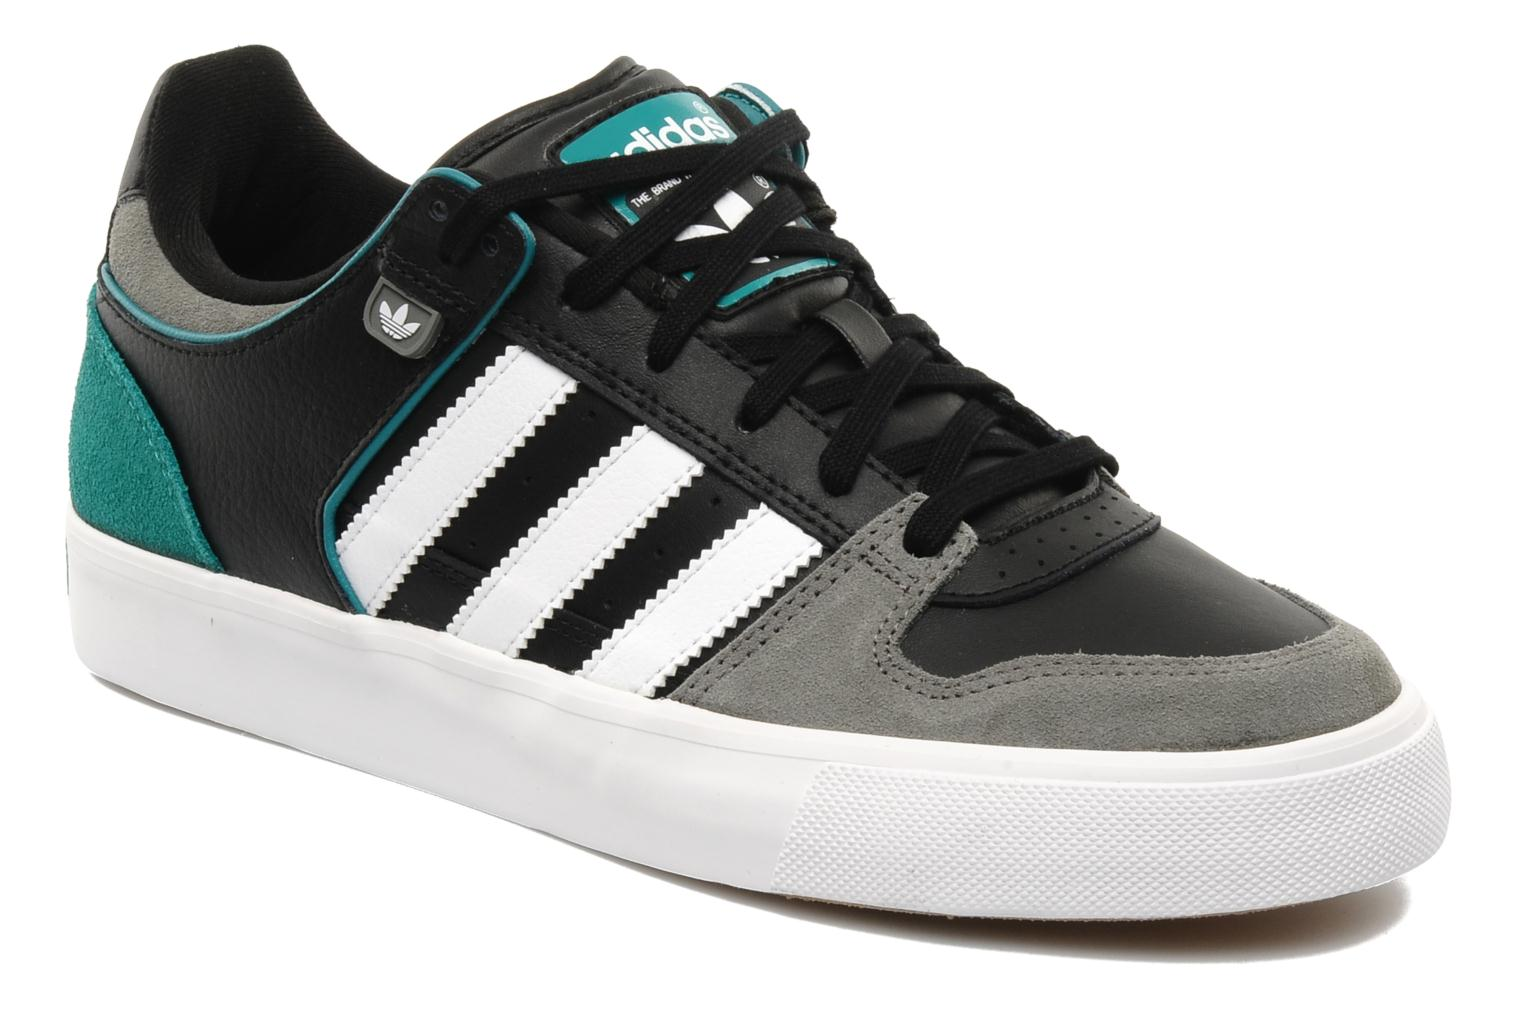 Culver Vulc Black 1 - Running White Ftw - Collegiate Aqua